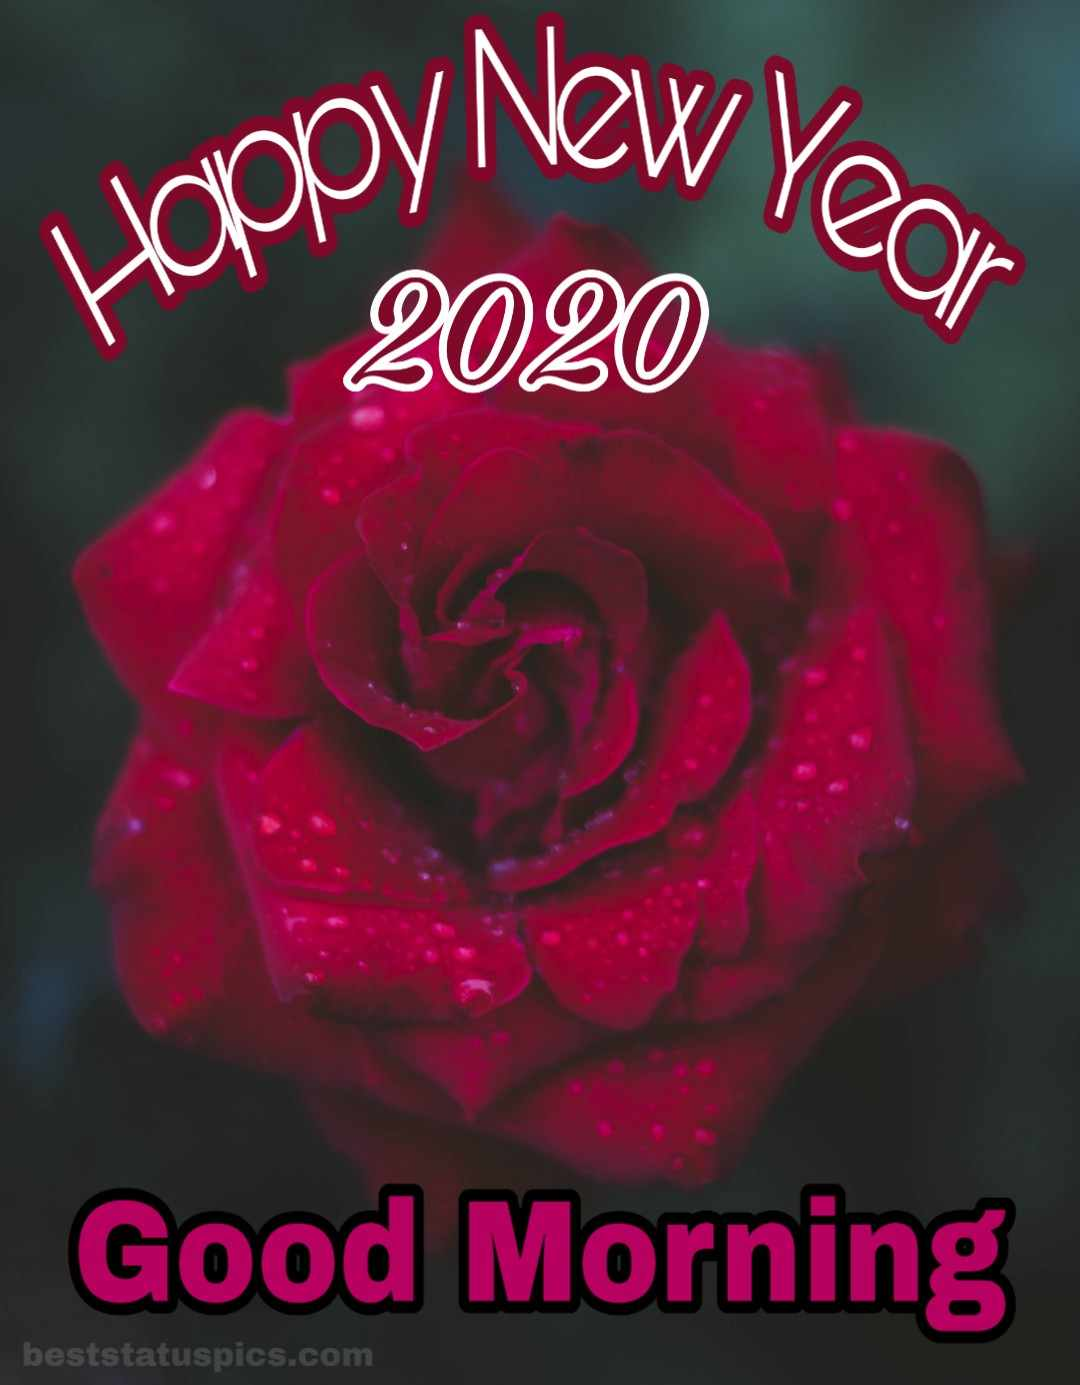 Good Morning Happy New Year 2020 Whatsapp Dp Status Images Best 1080x1385